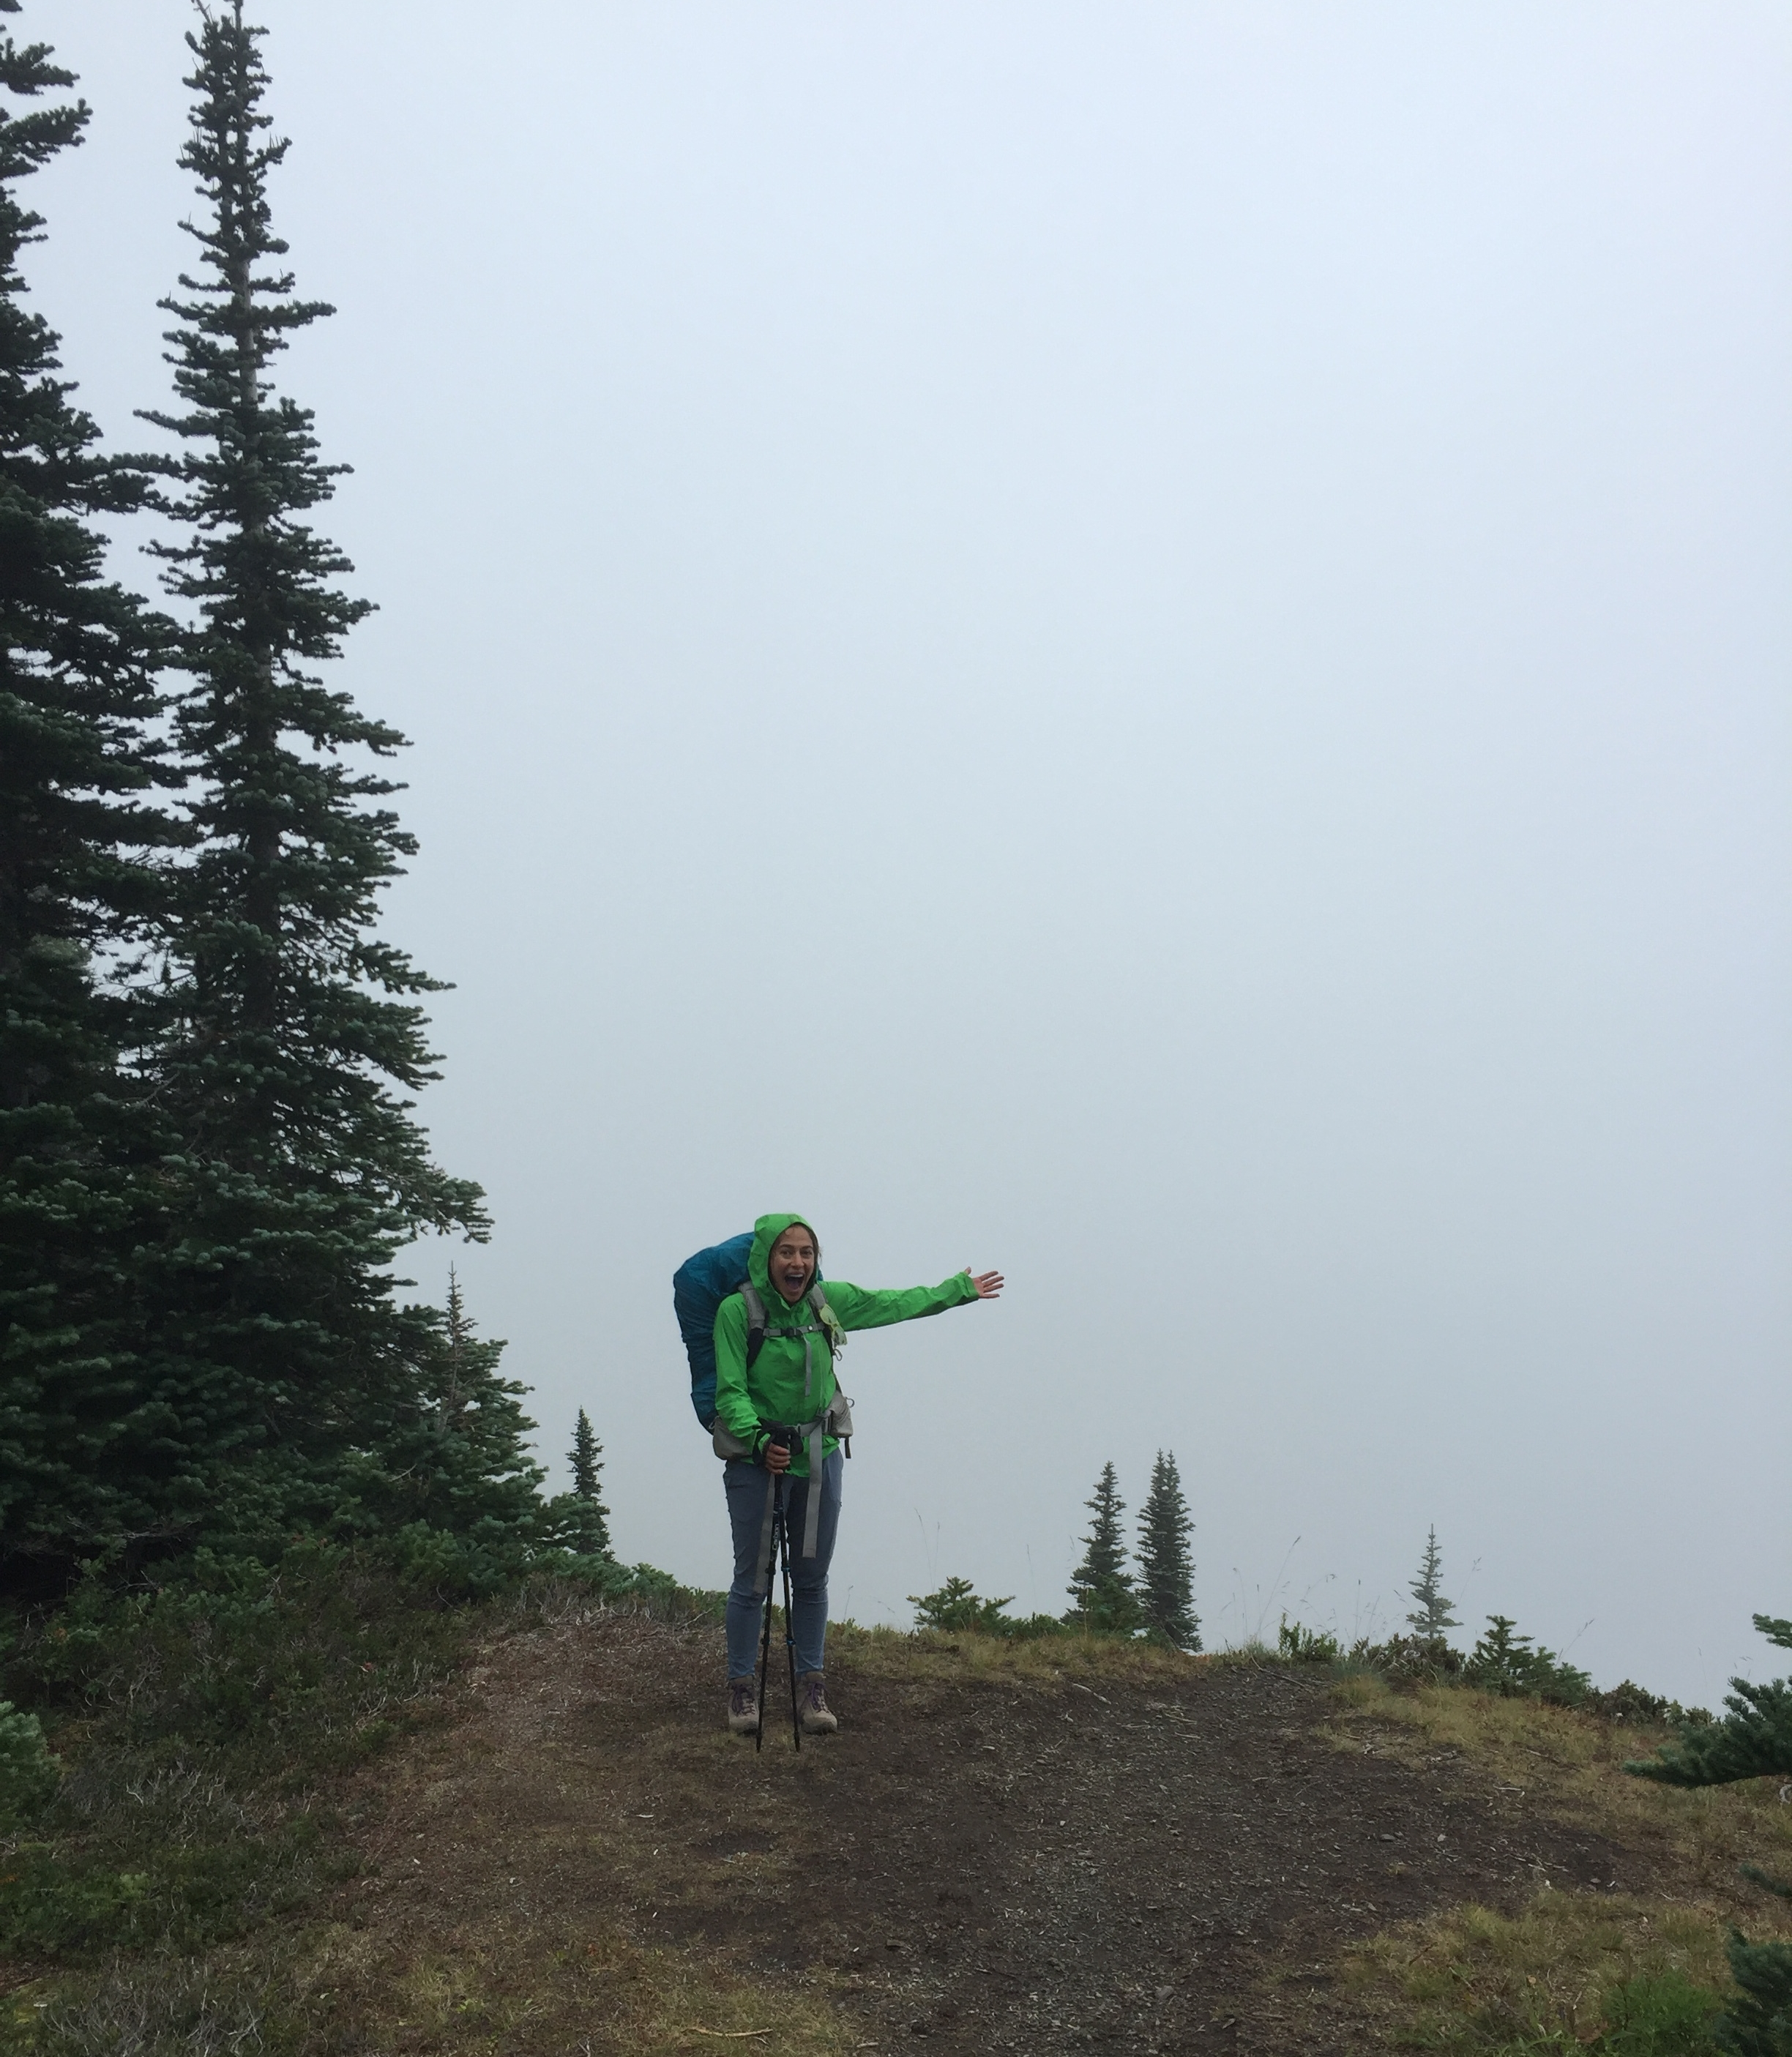 Check out that view! [Olympic National Park]